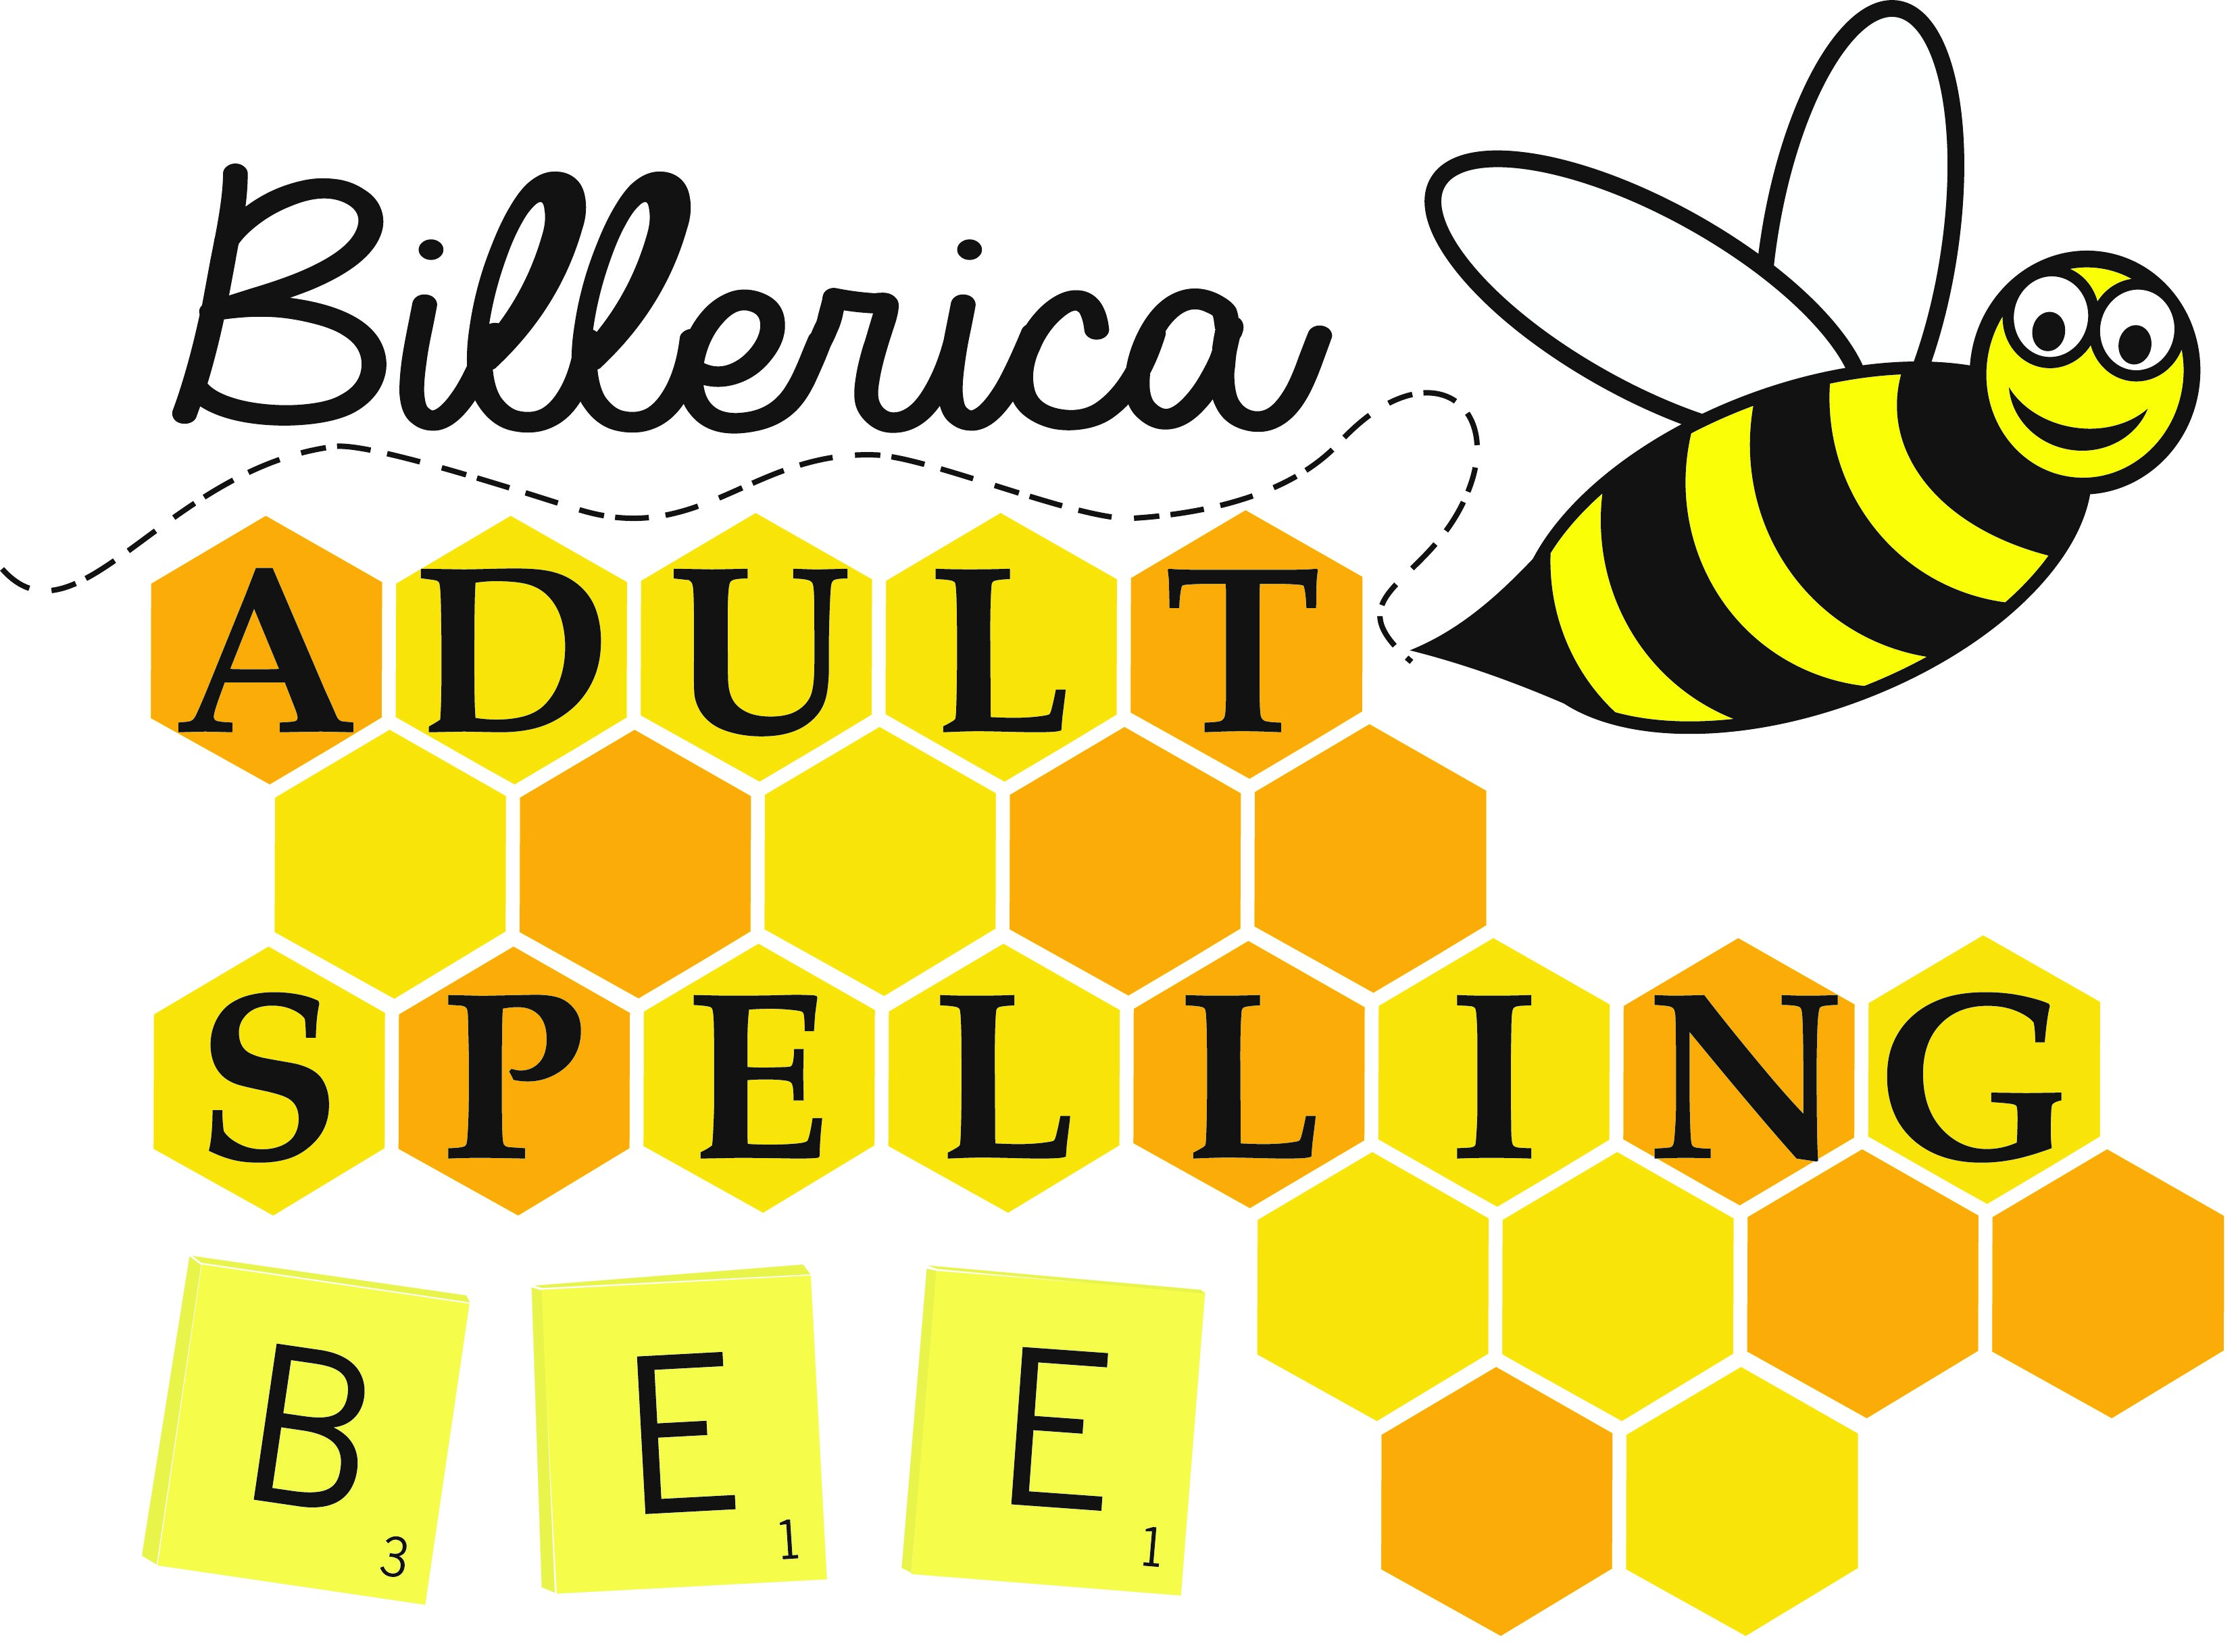 bee spelling Adult